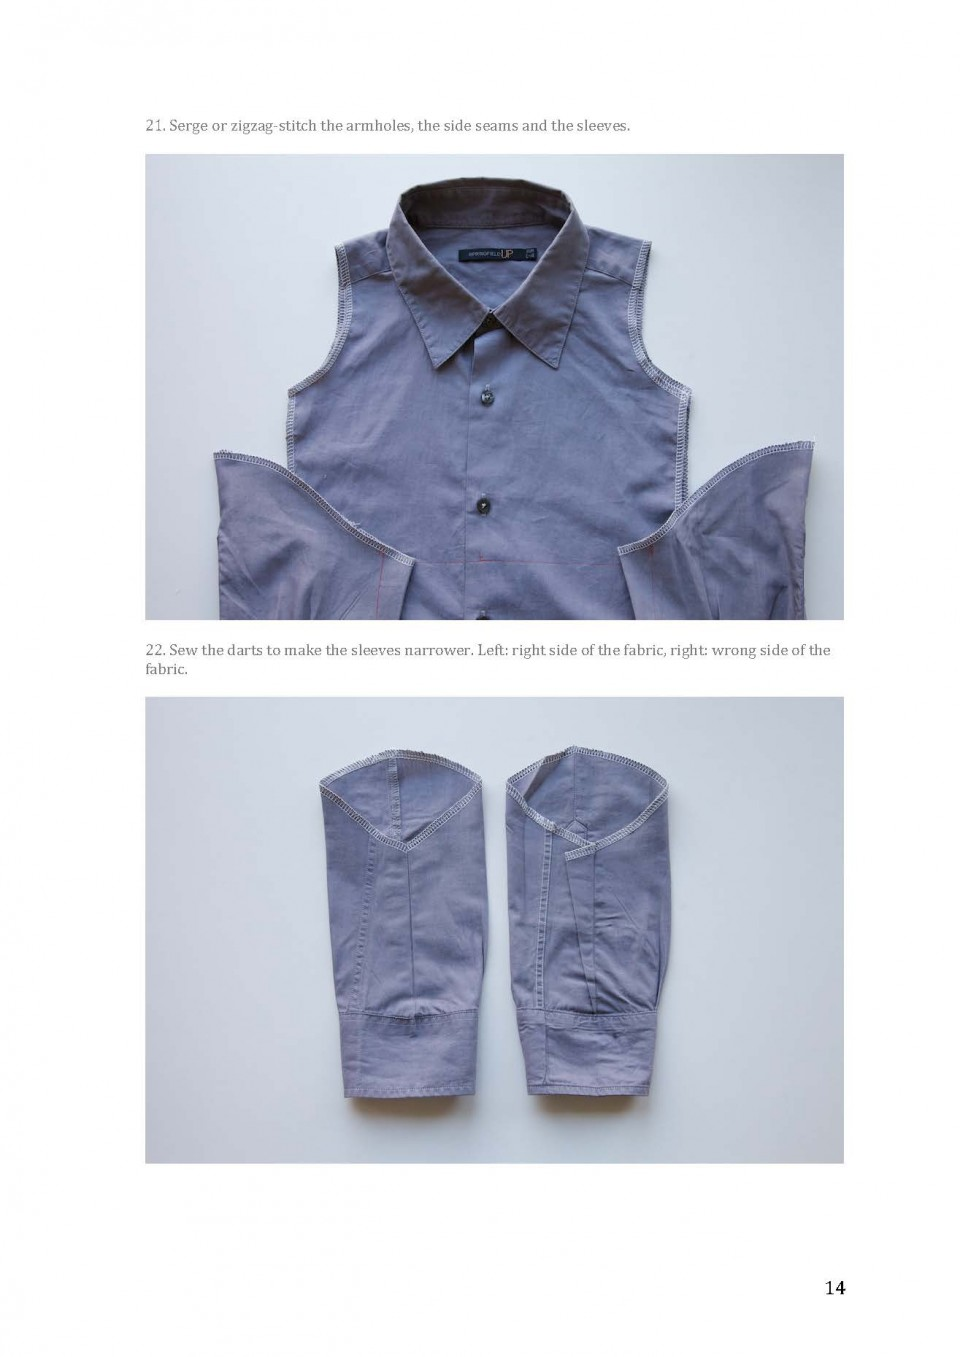 Compagnie-M_The Lisa dress_the up-cycled men's shirt_Page_14